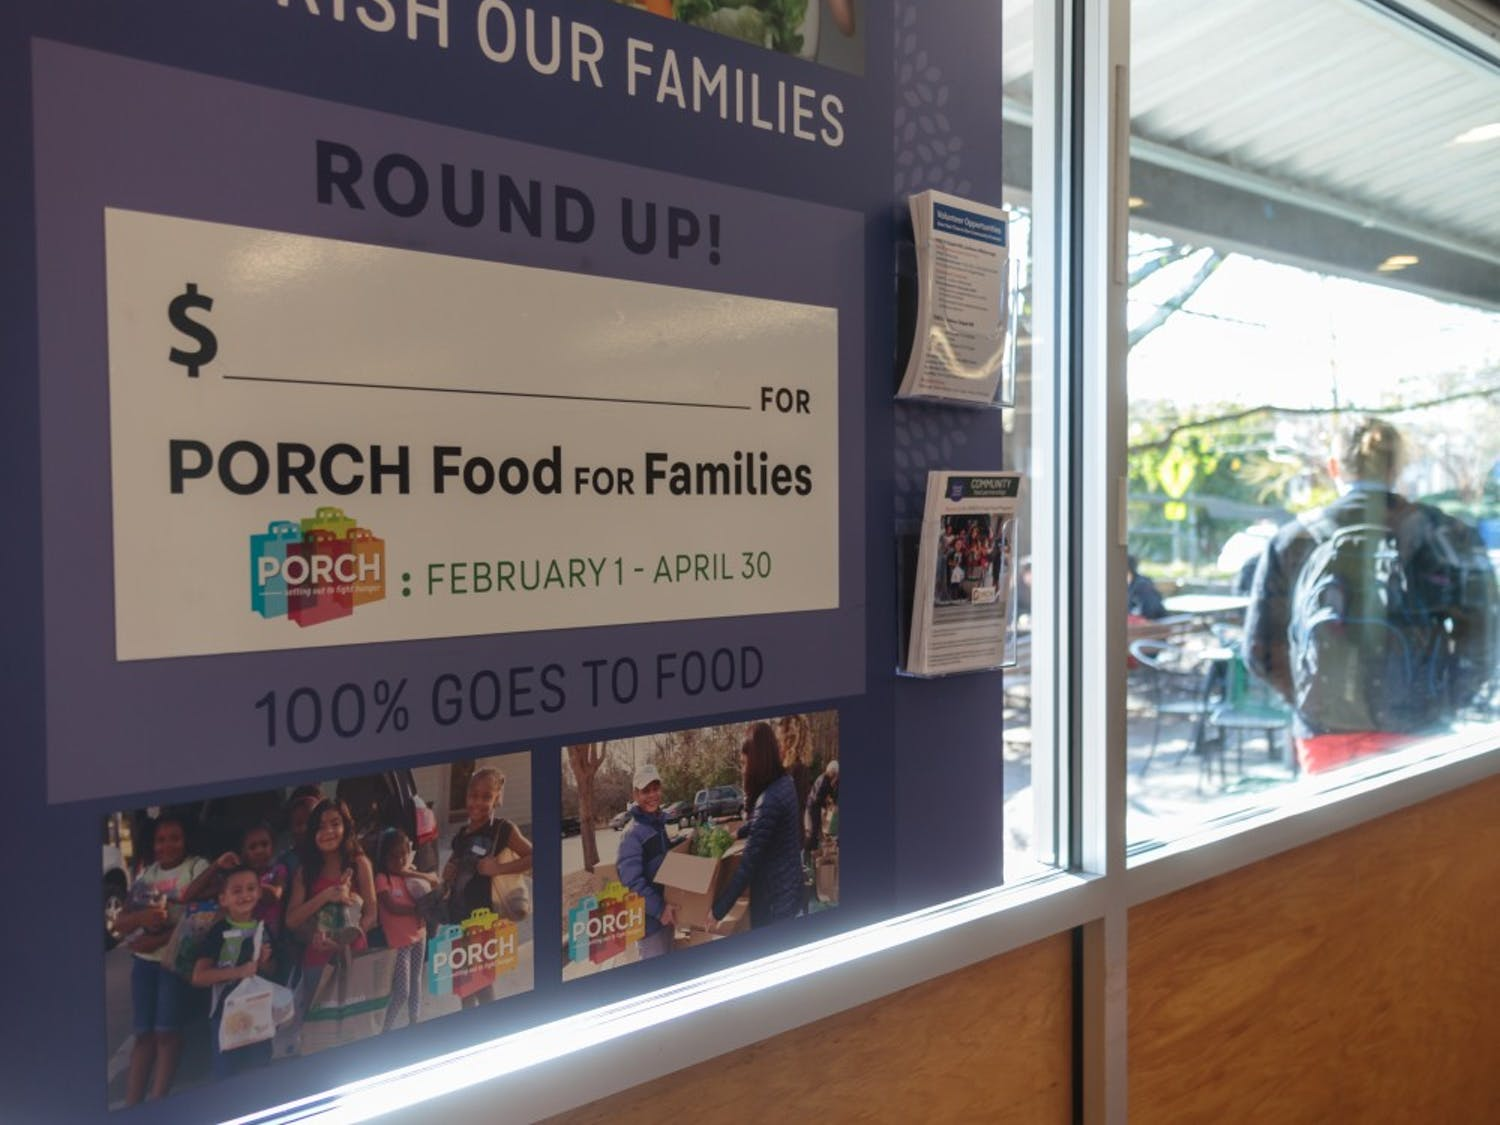 On Feb. 1, Weaver Street Market began a fundraising campaign for PORCH, which will run through April 30, 2019.